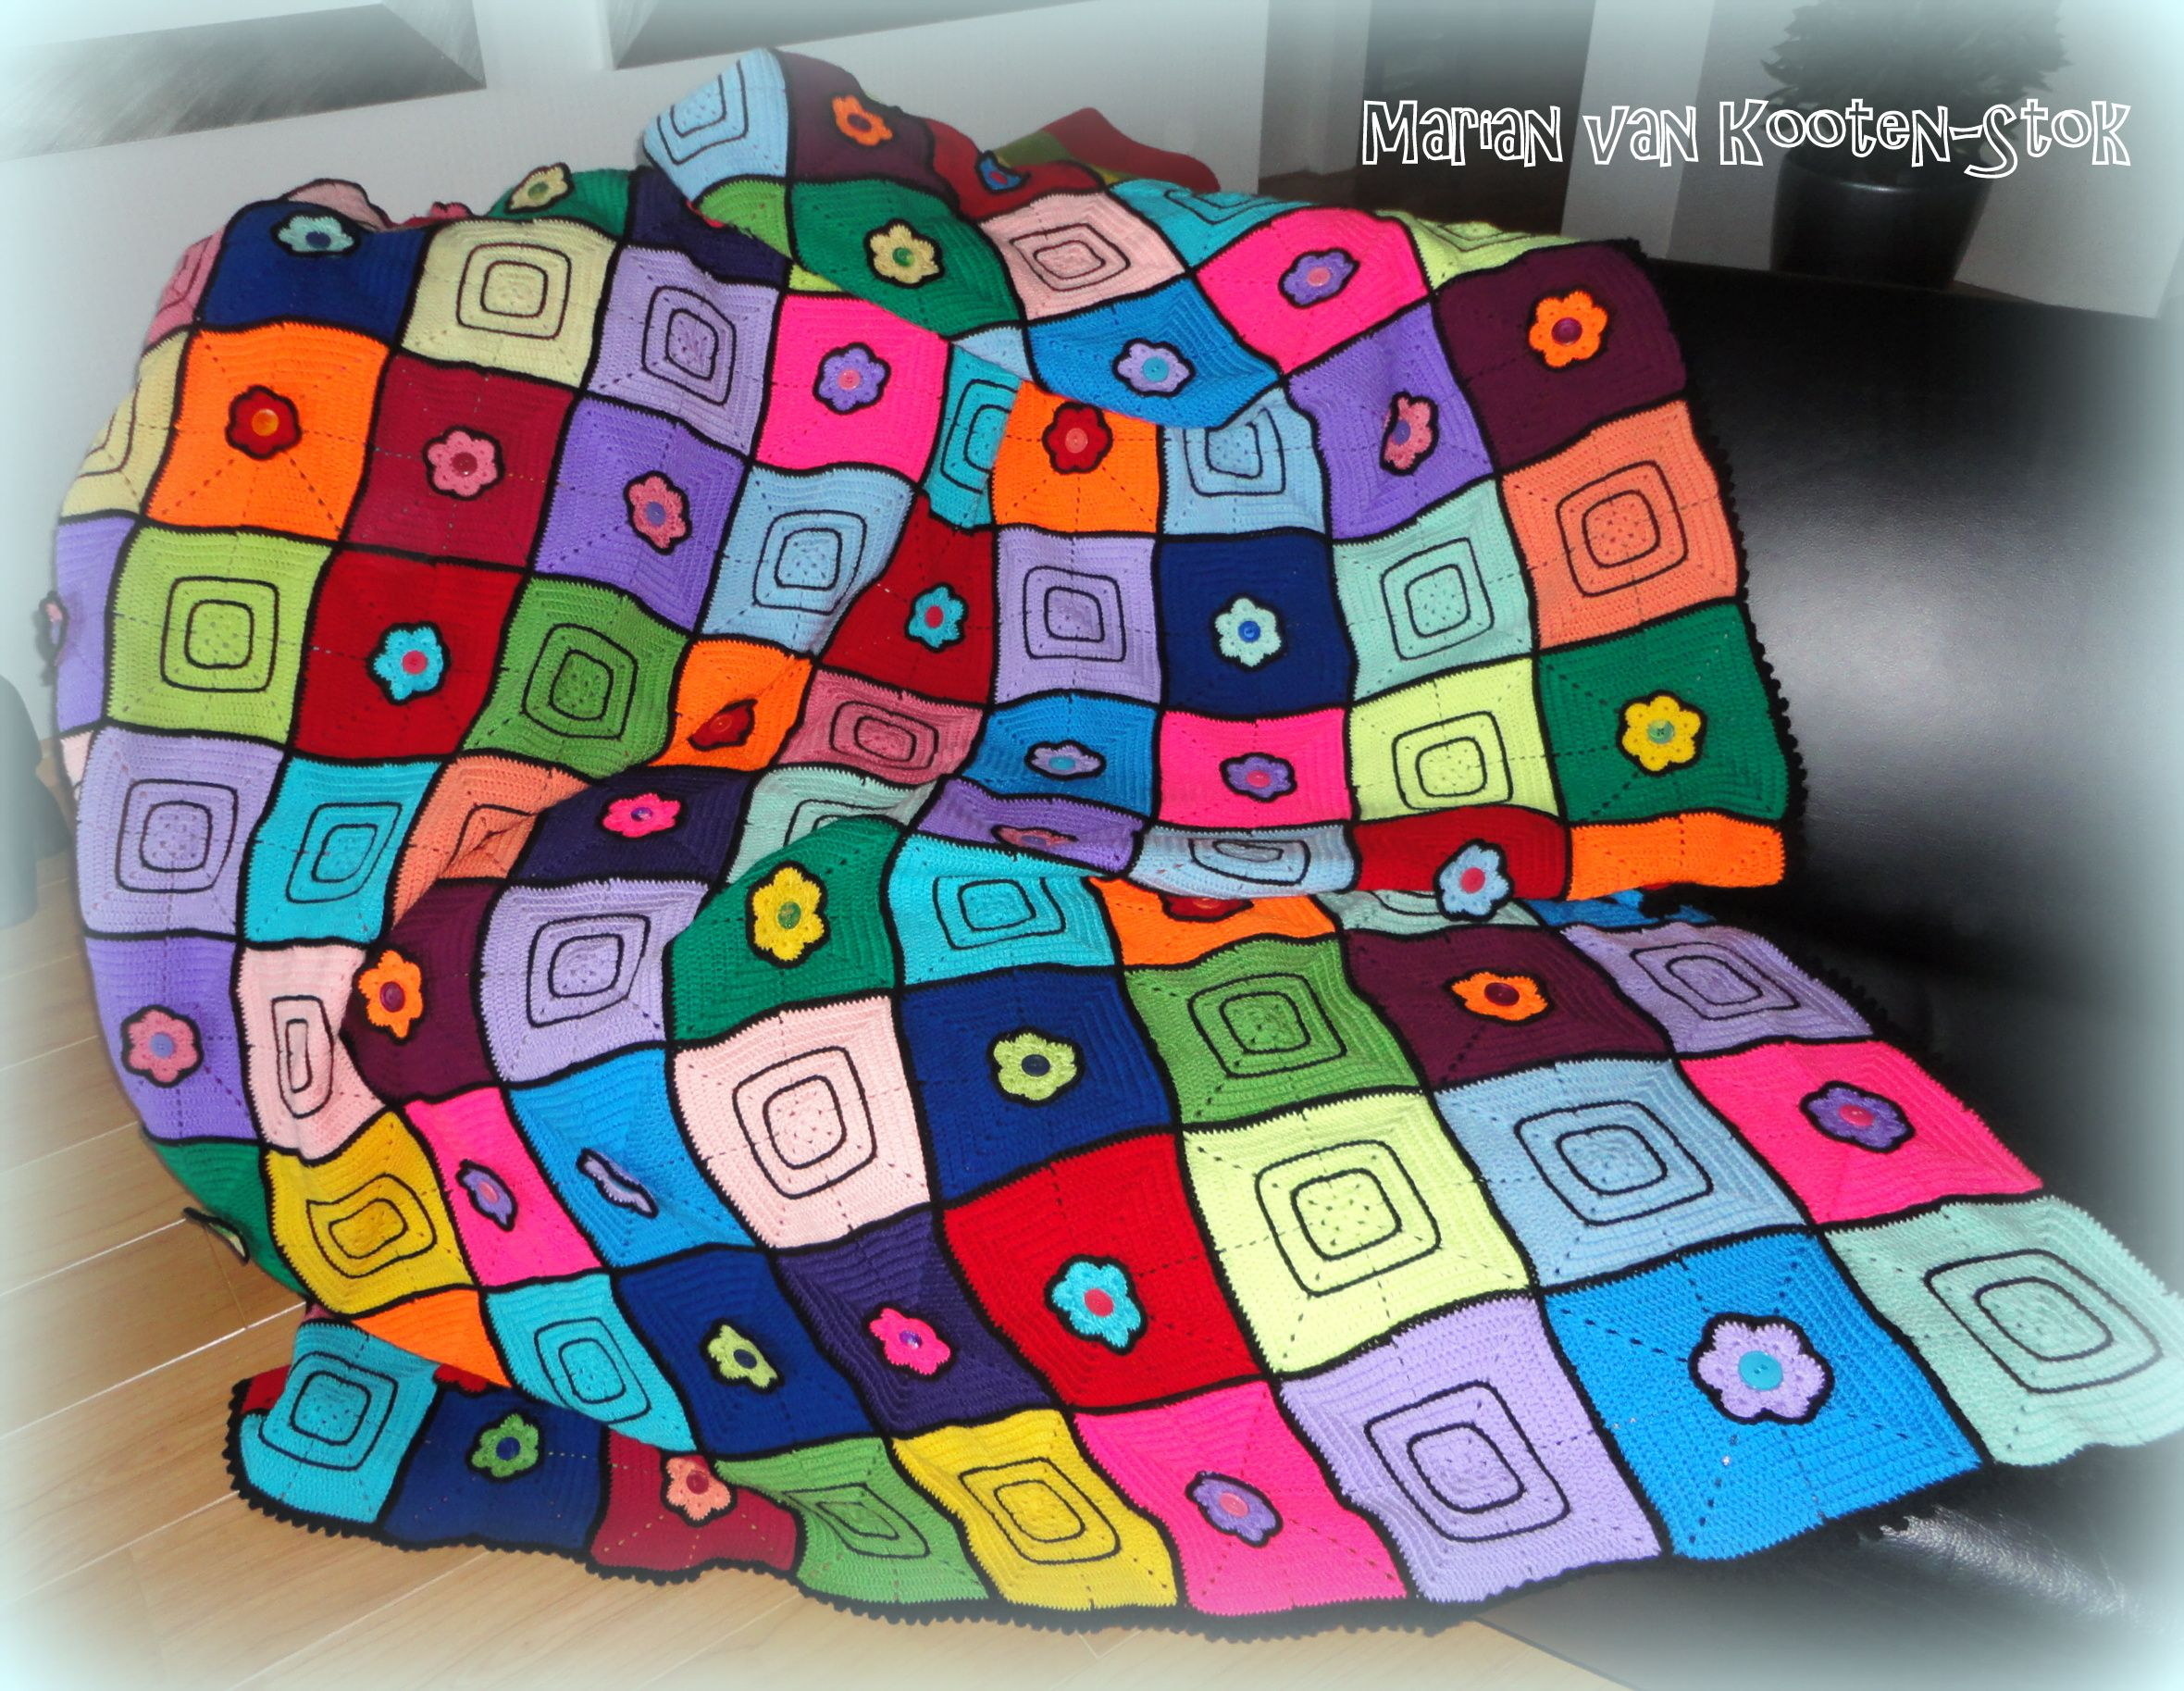 This is the pattern of the square http://www.pinterest.com/pin/126734176985457267/ and this is the pattern of the flower http://www.pinterest.com/pin/126734176987800006/. I used also a little bit of imagination.